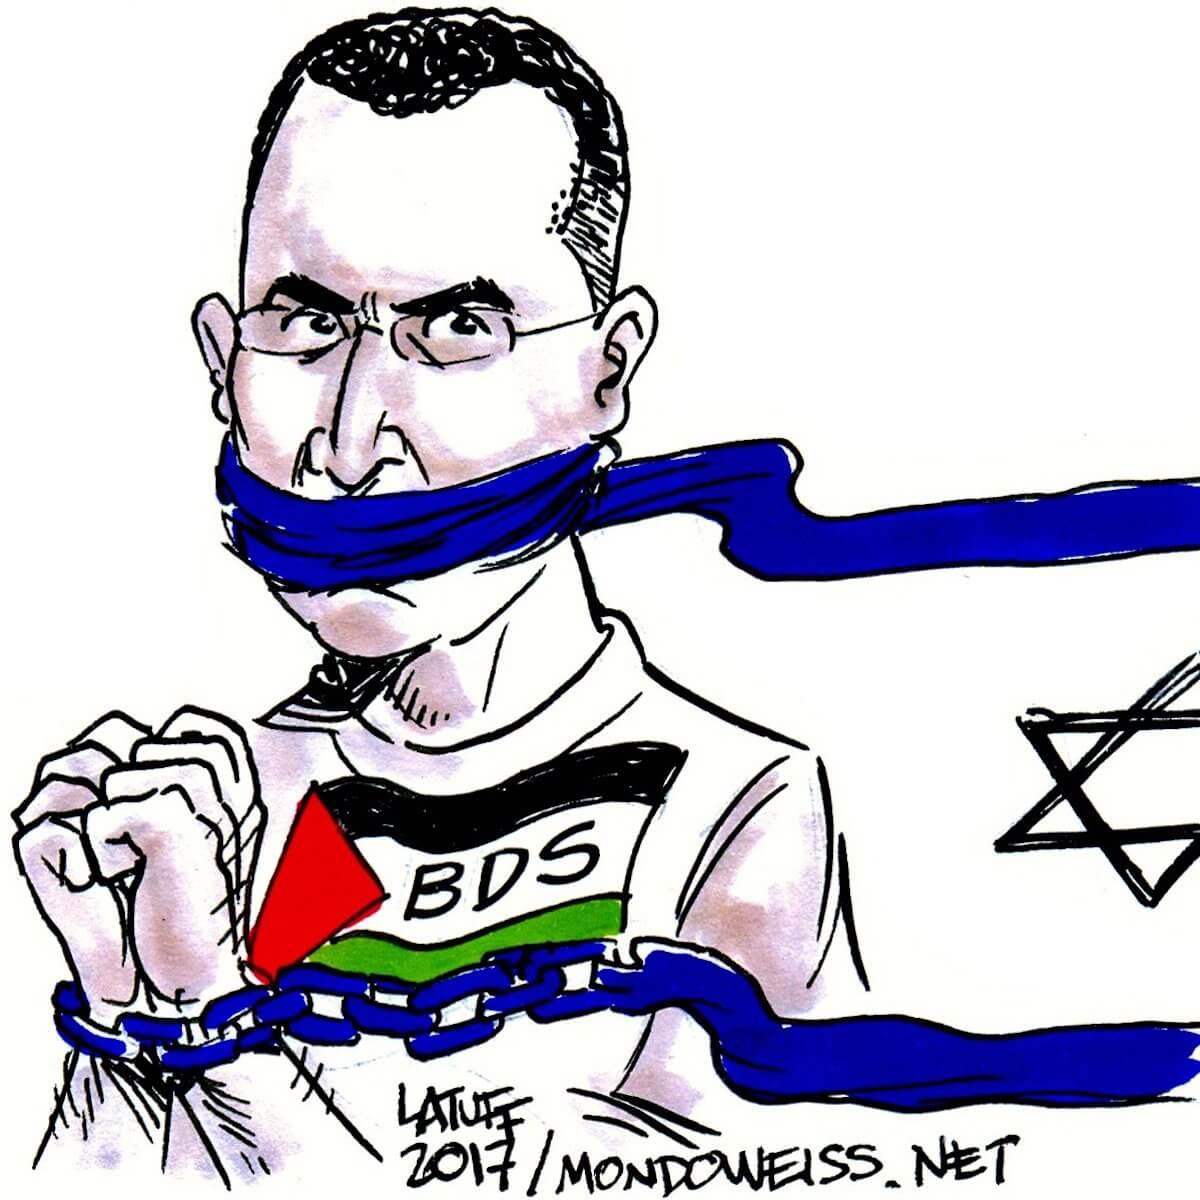 Israel prepares to deport BDS co-founder Omar Barghouti